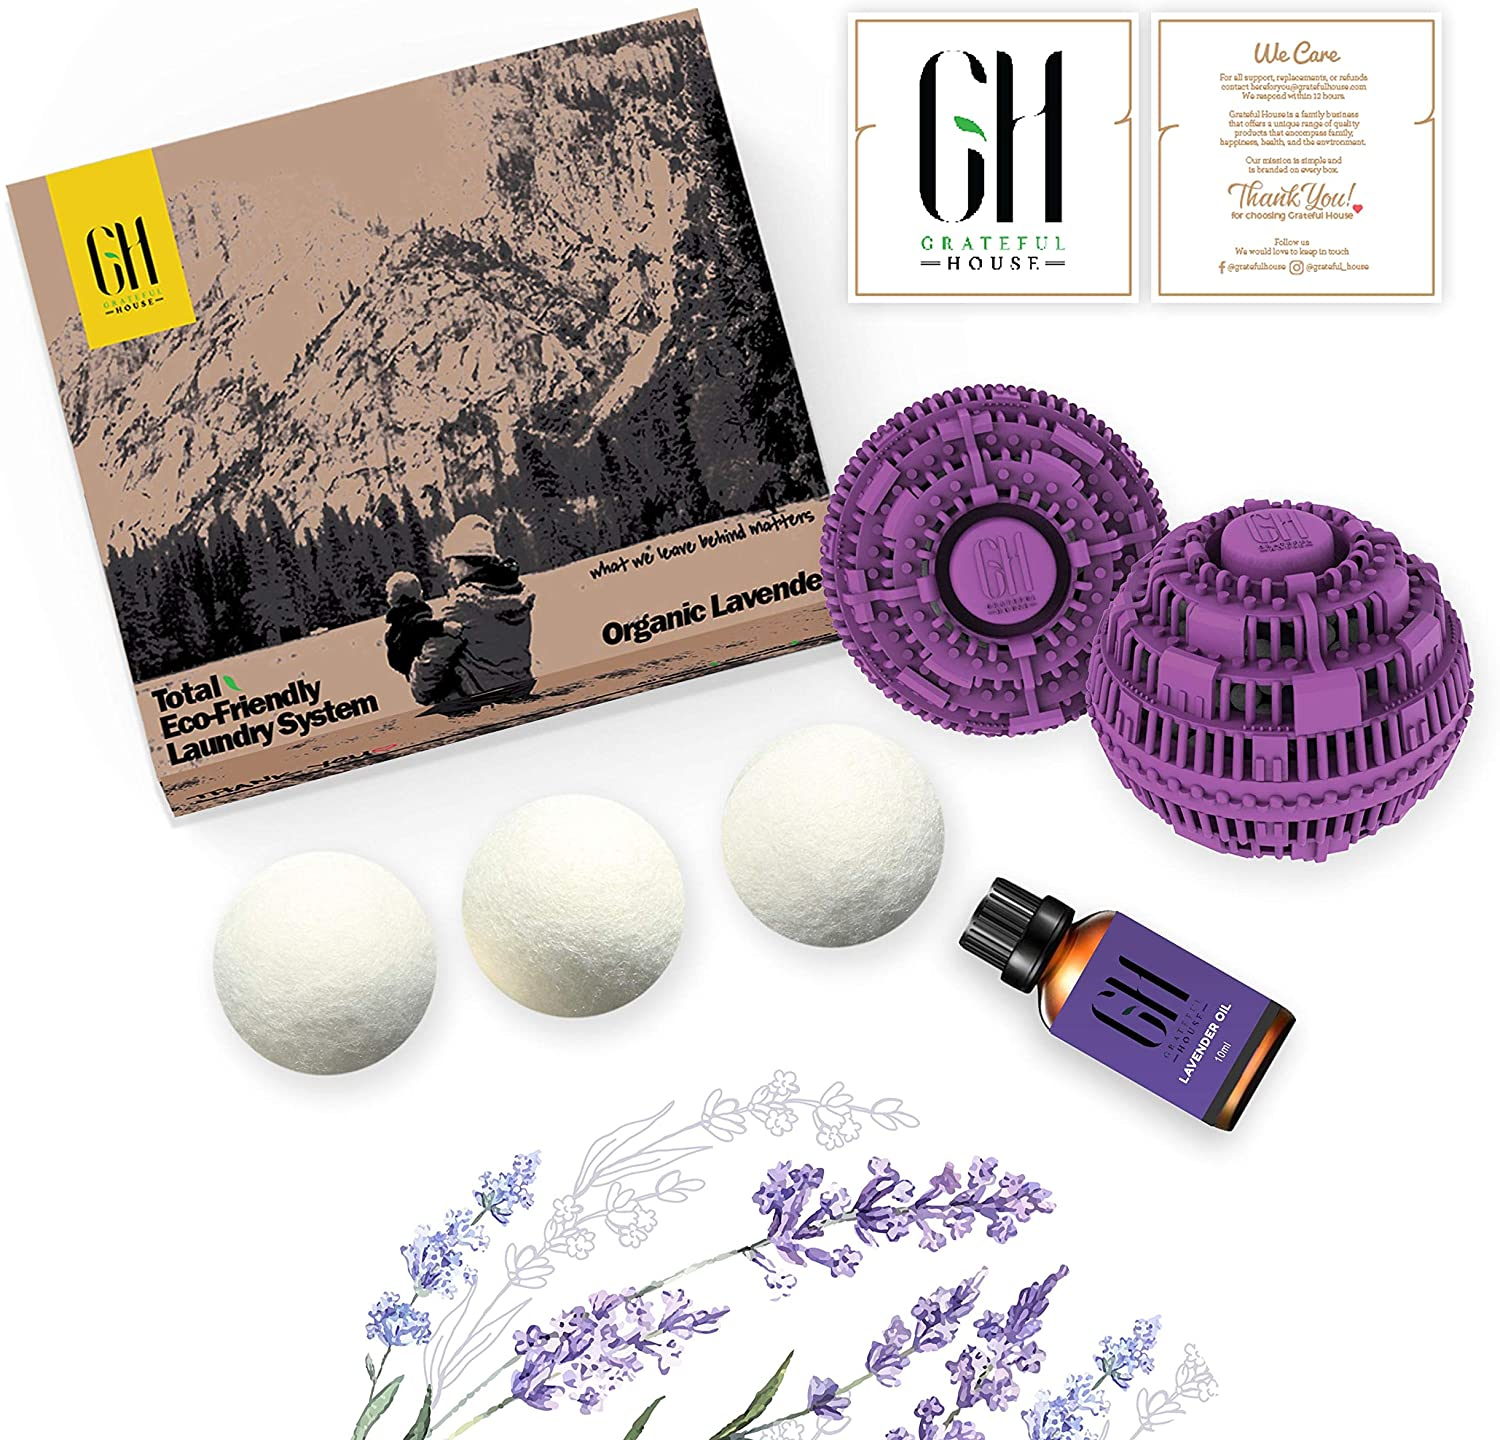 Grateful House Reusable Total Eco Friendly Laundry Set. Includes 2 Laundry Balls, 3 Organic Wool Dryer balls & Organic Essential Oil of Lavender. Total Laundry System